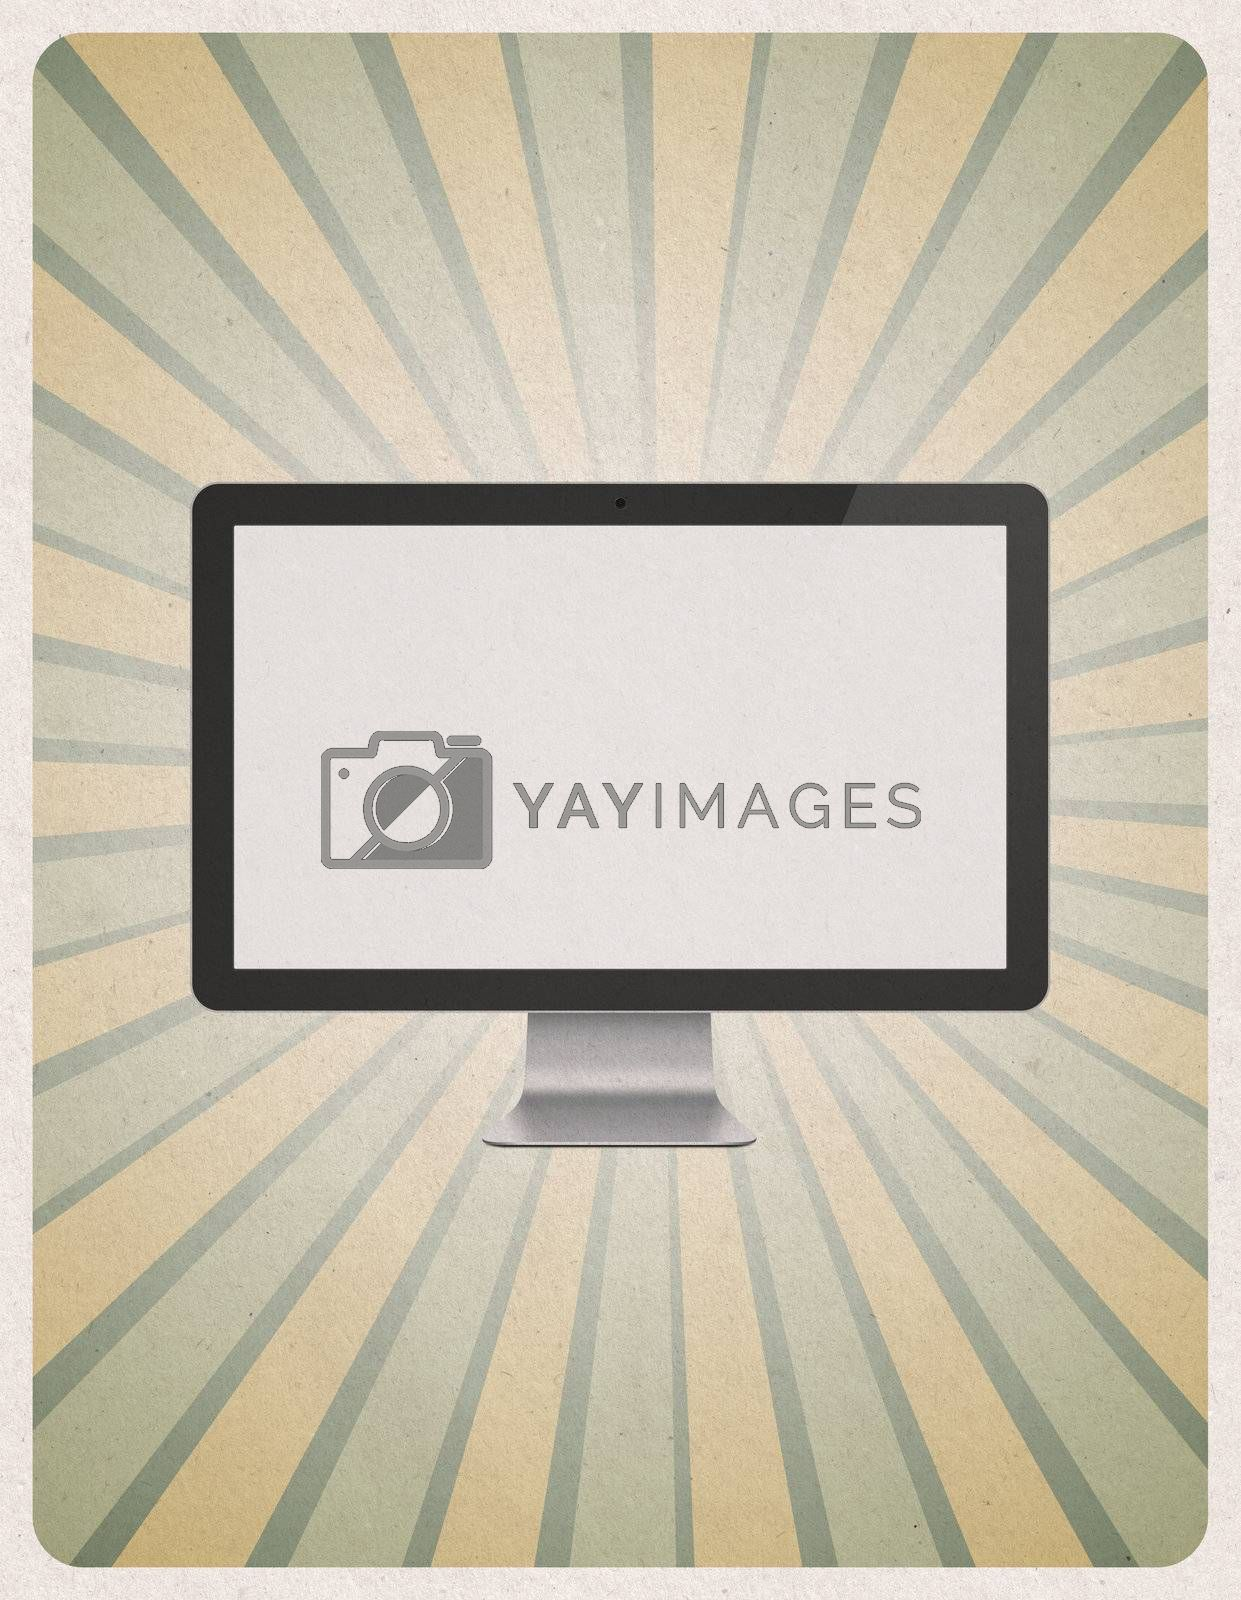 Retro style poster or vintage advertisement with modern blank computer monitor on grunge paper background.